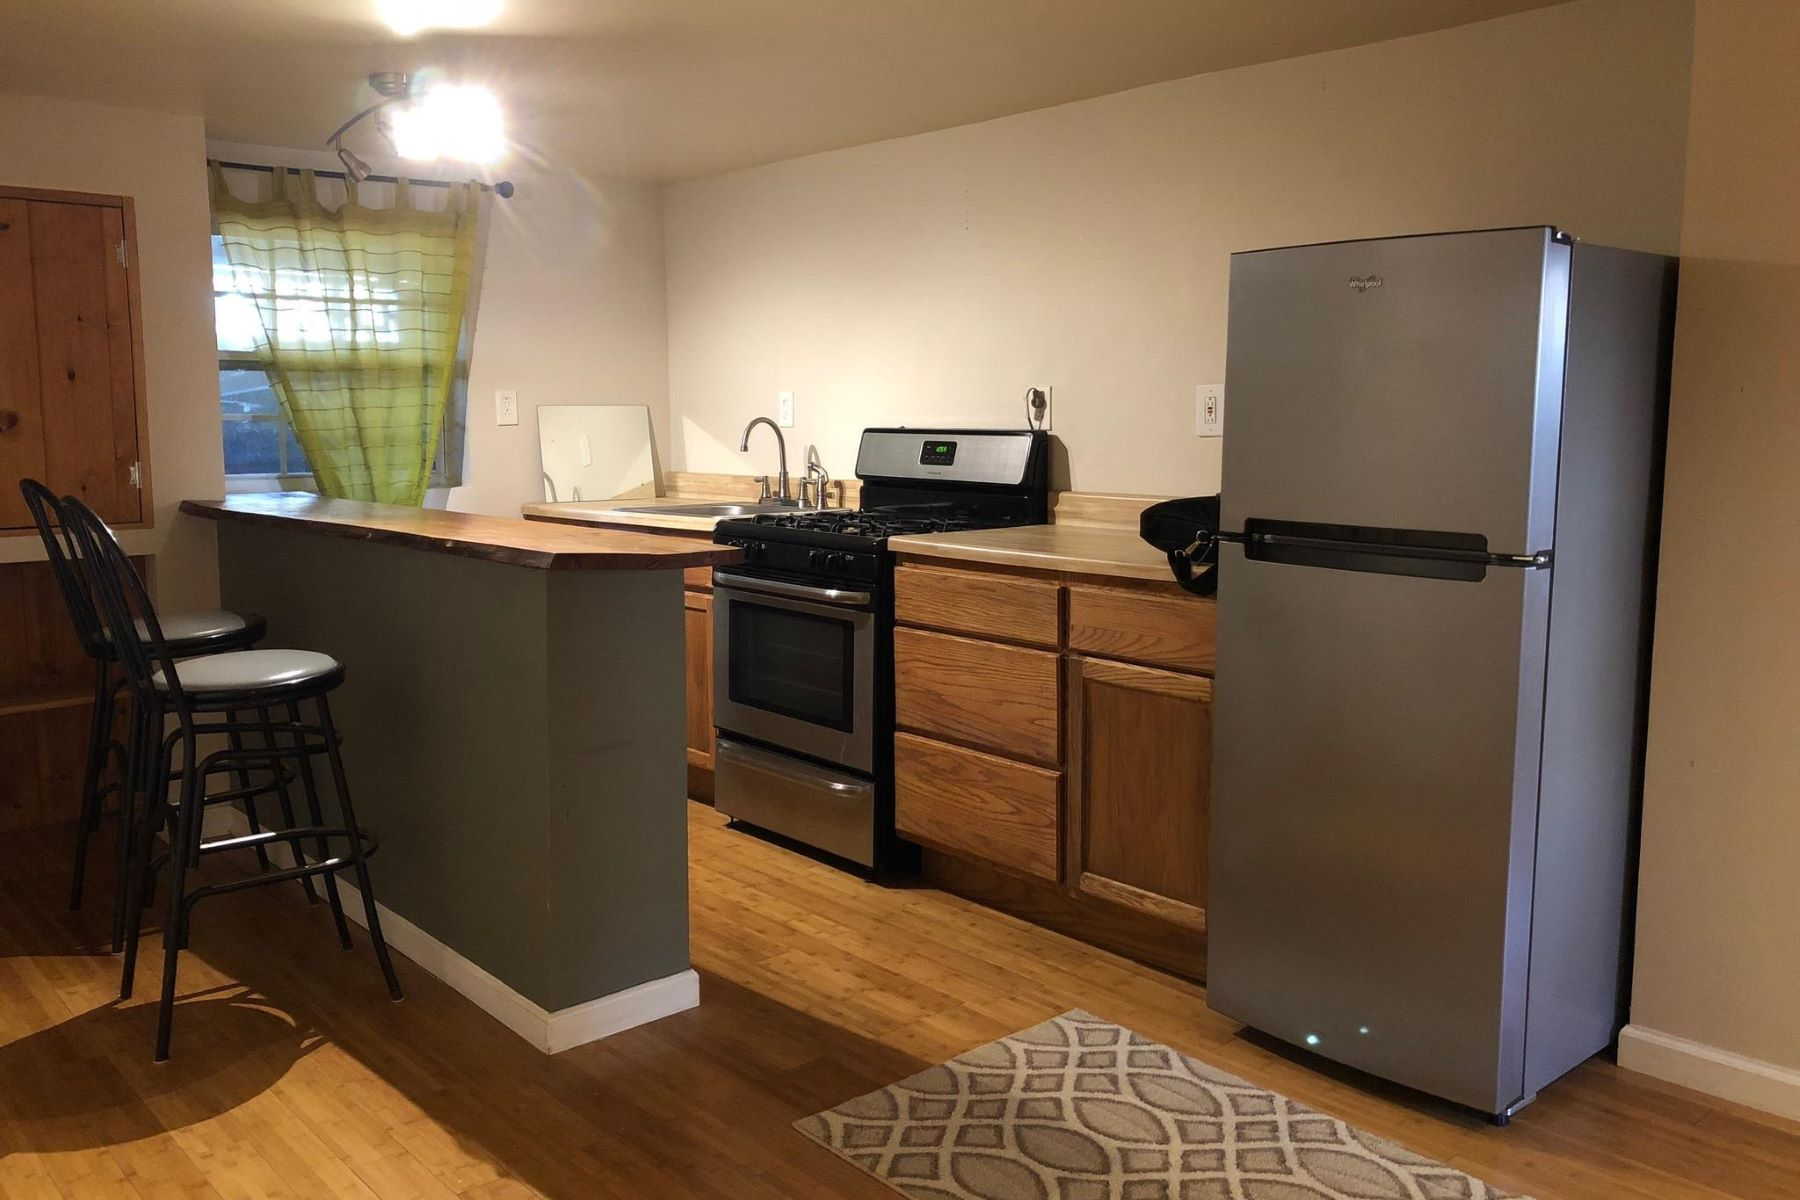 Apartment for Rent at 3725 New Hampshire Ave Nw 3725 New Hampshire Ave Nw Washington, District Of Columbia 20010 United States